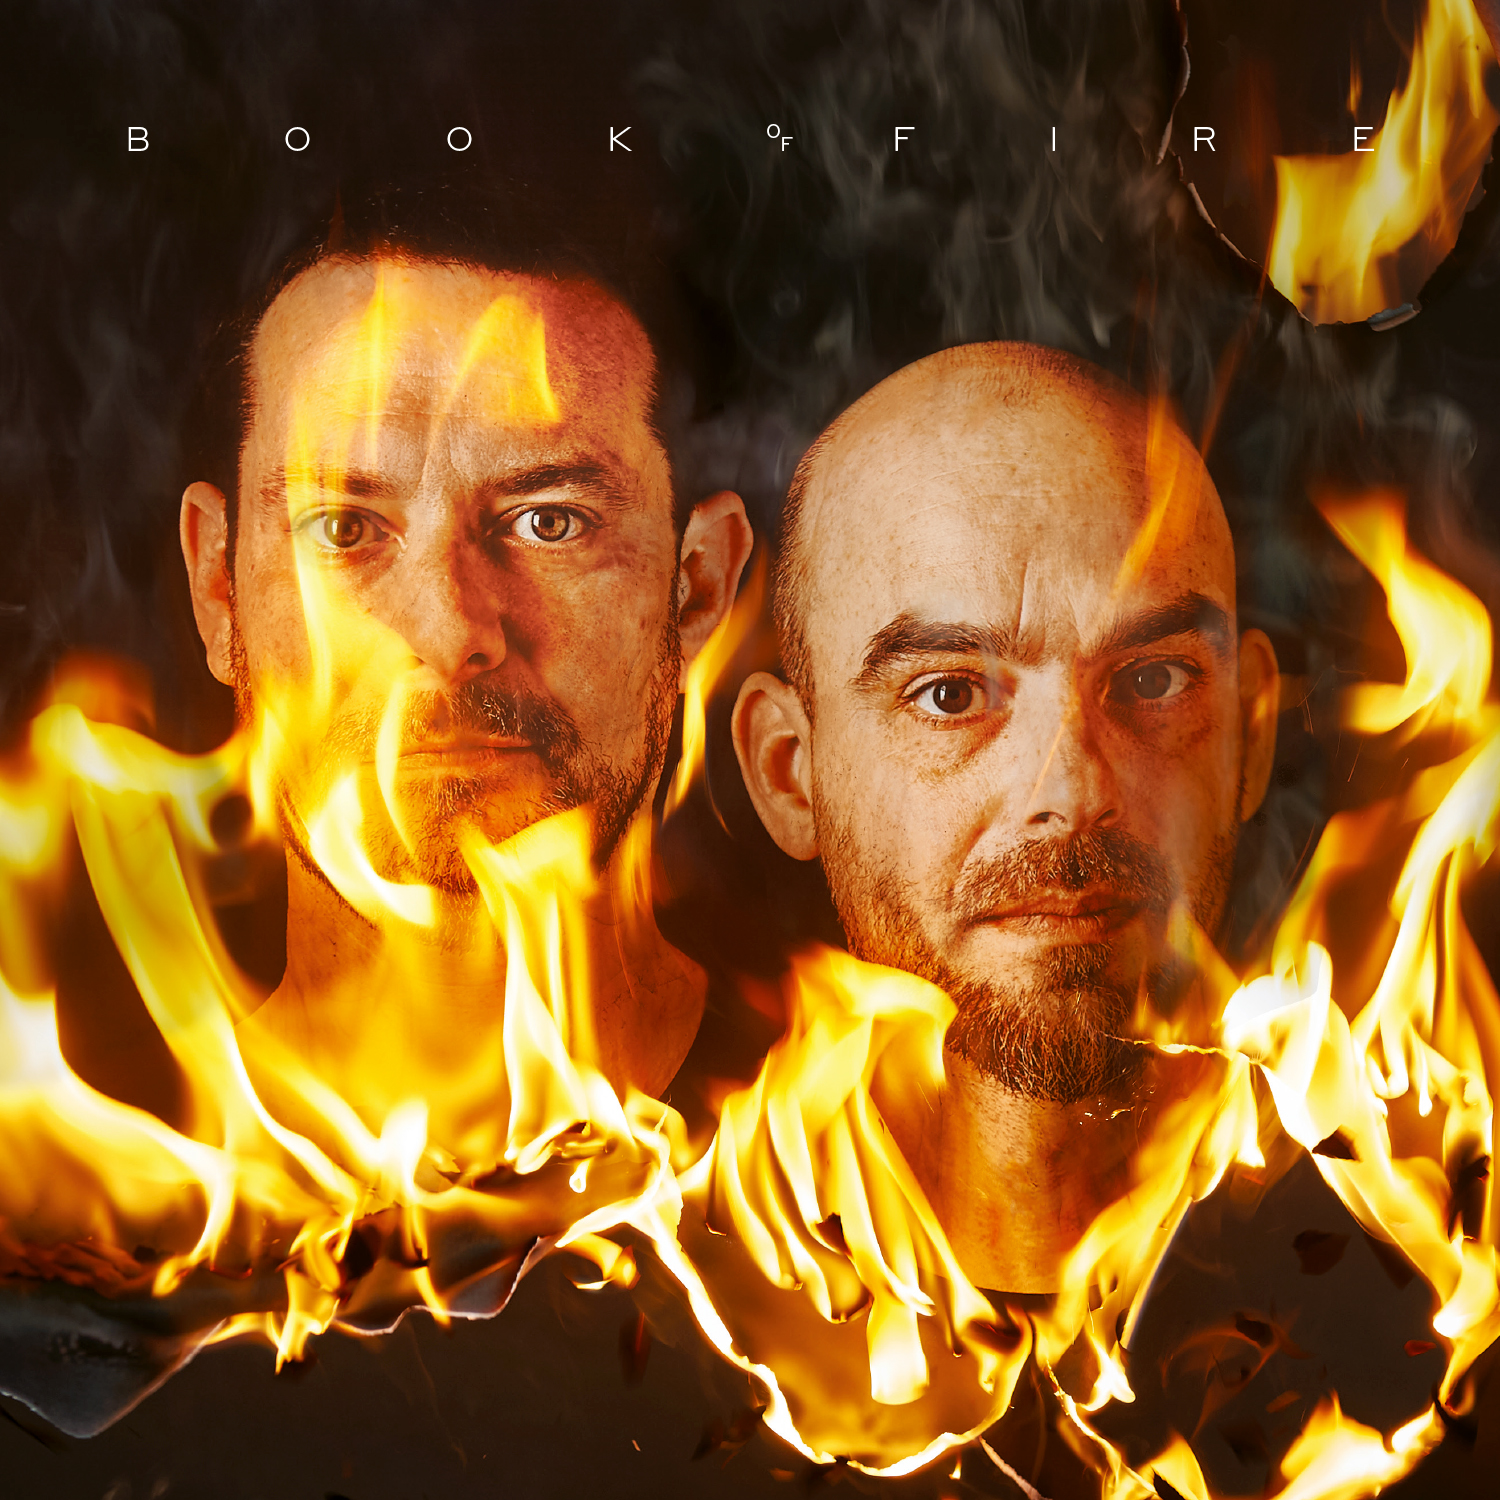 """NEW RELEASE: Eric Hofbauer's """"Book of Fire"""" Due Out January 31st on Creative Nation Music"""